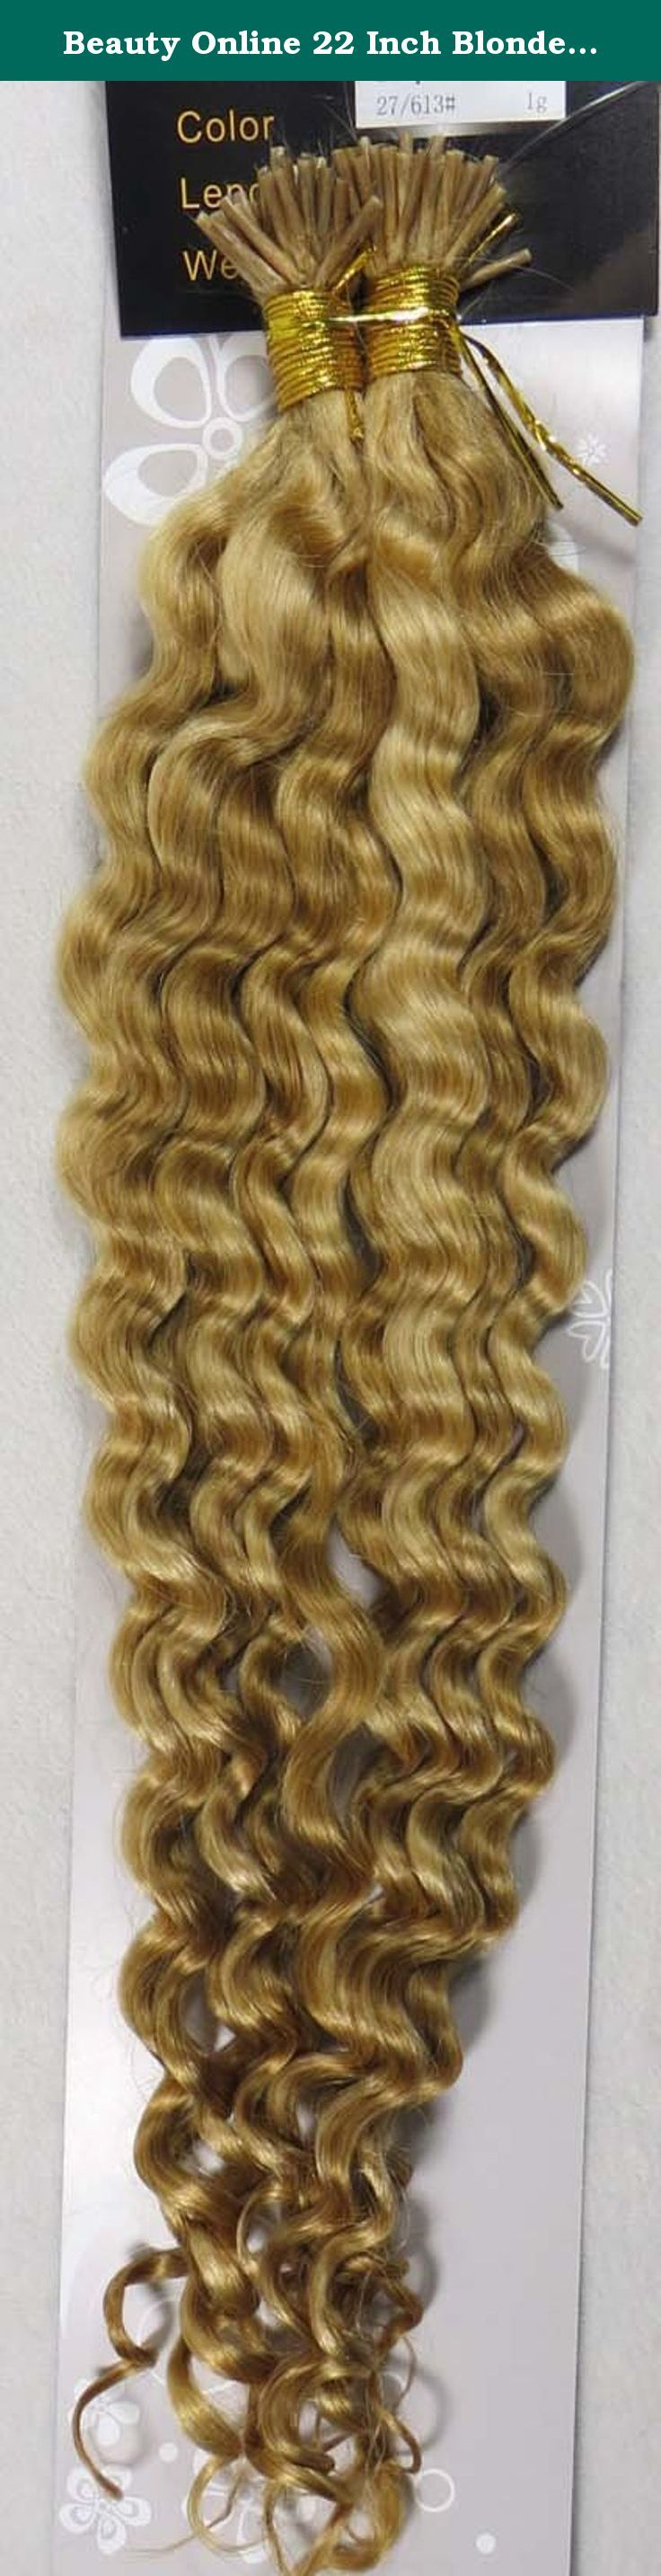 Beauty Online 22 Inch Blonde Highlight (#27/613) 100s Deep Wave Stick I Tip Fusion Human Hair Extensions - 100% Remy Human Hair Extensions. 100% remy human hair extensions and very competitive price. stick tip/I tip hair Can be washed, heat styled. High quality, tangle free, silky soft. 200-300strands are recommended for whole head. THERE ARE ANOTHER COLOURS AND SIZES CAN BE CHOSEN IN OUR SHOP.